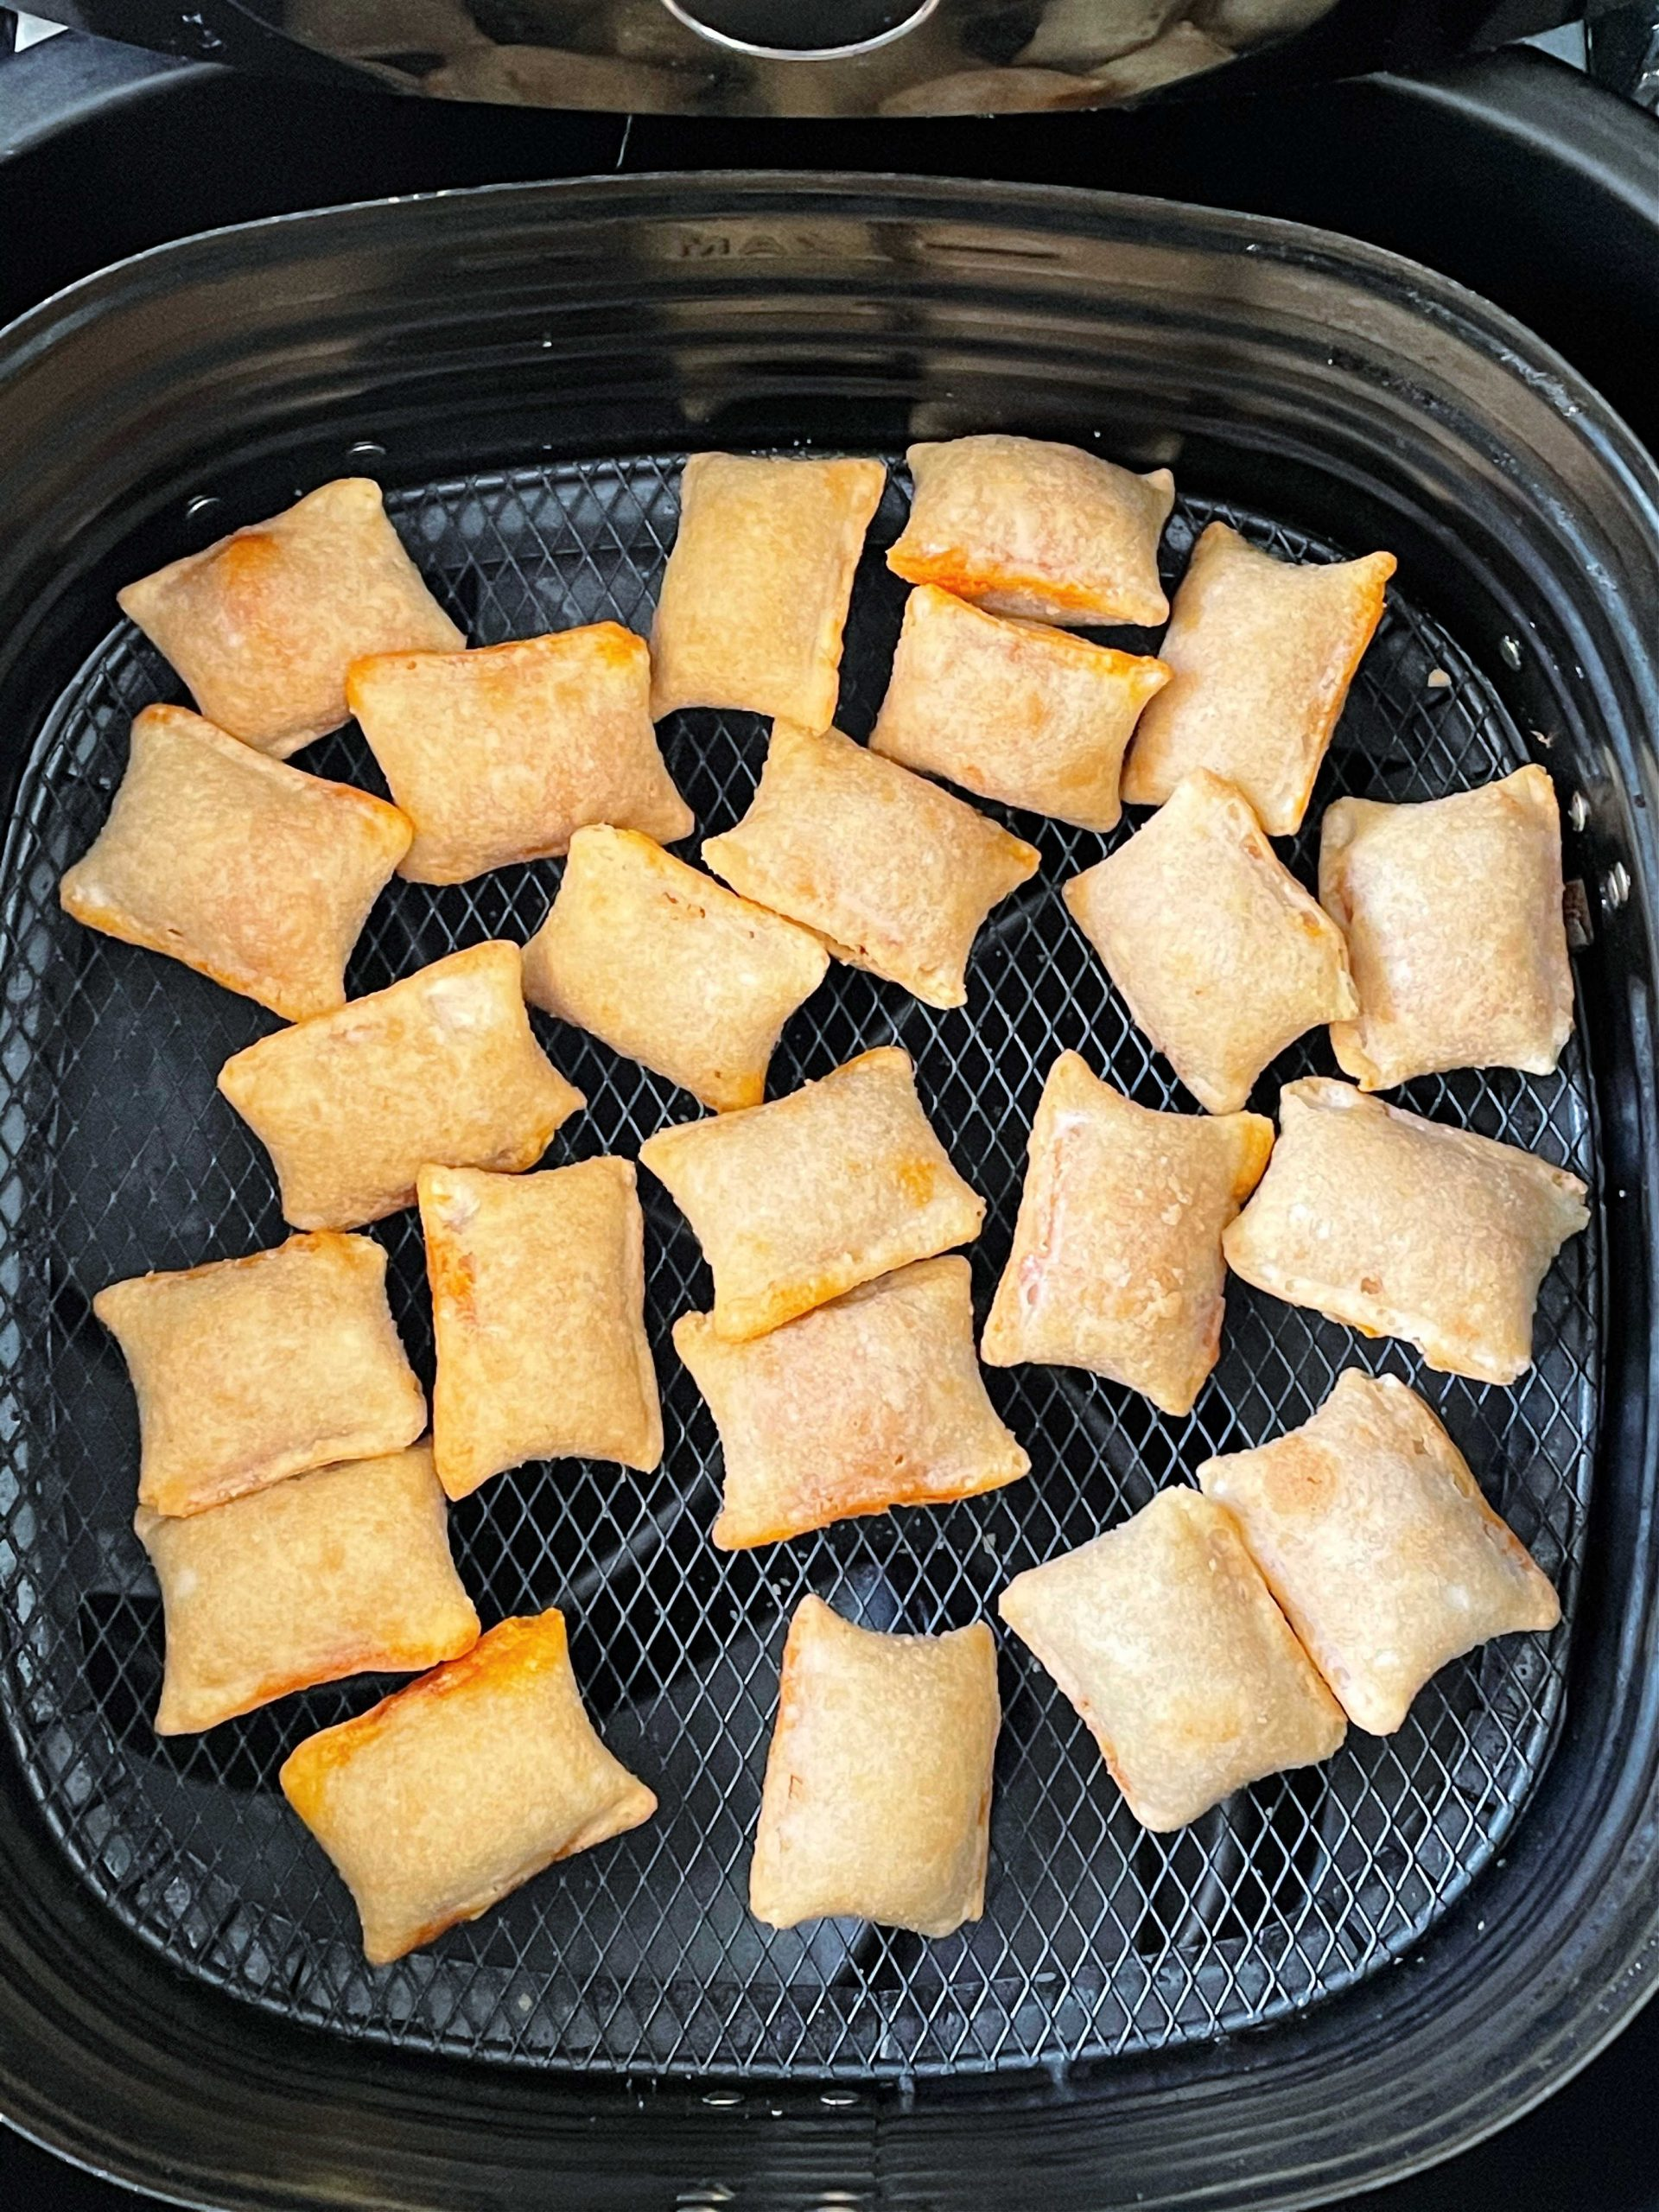 cooked pizza rolls in the air fryer basket